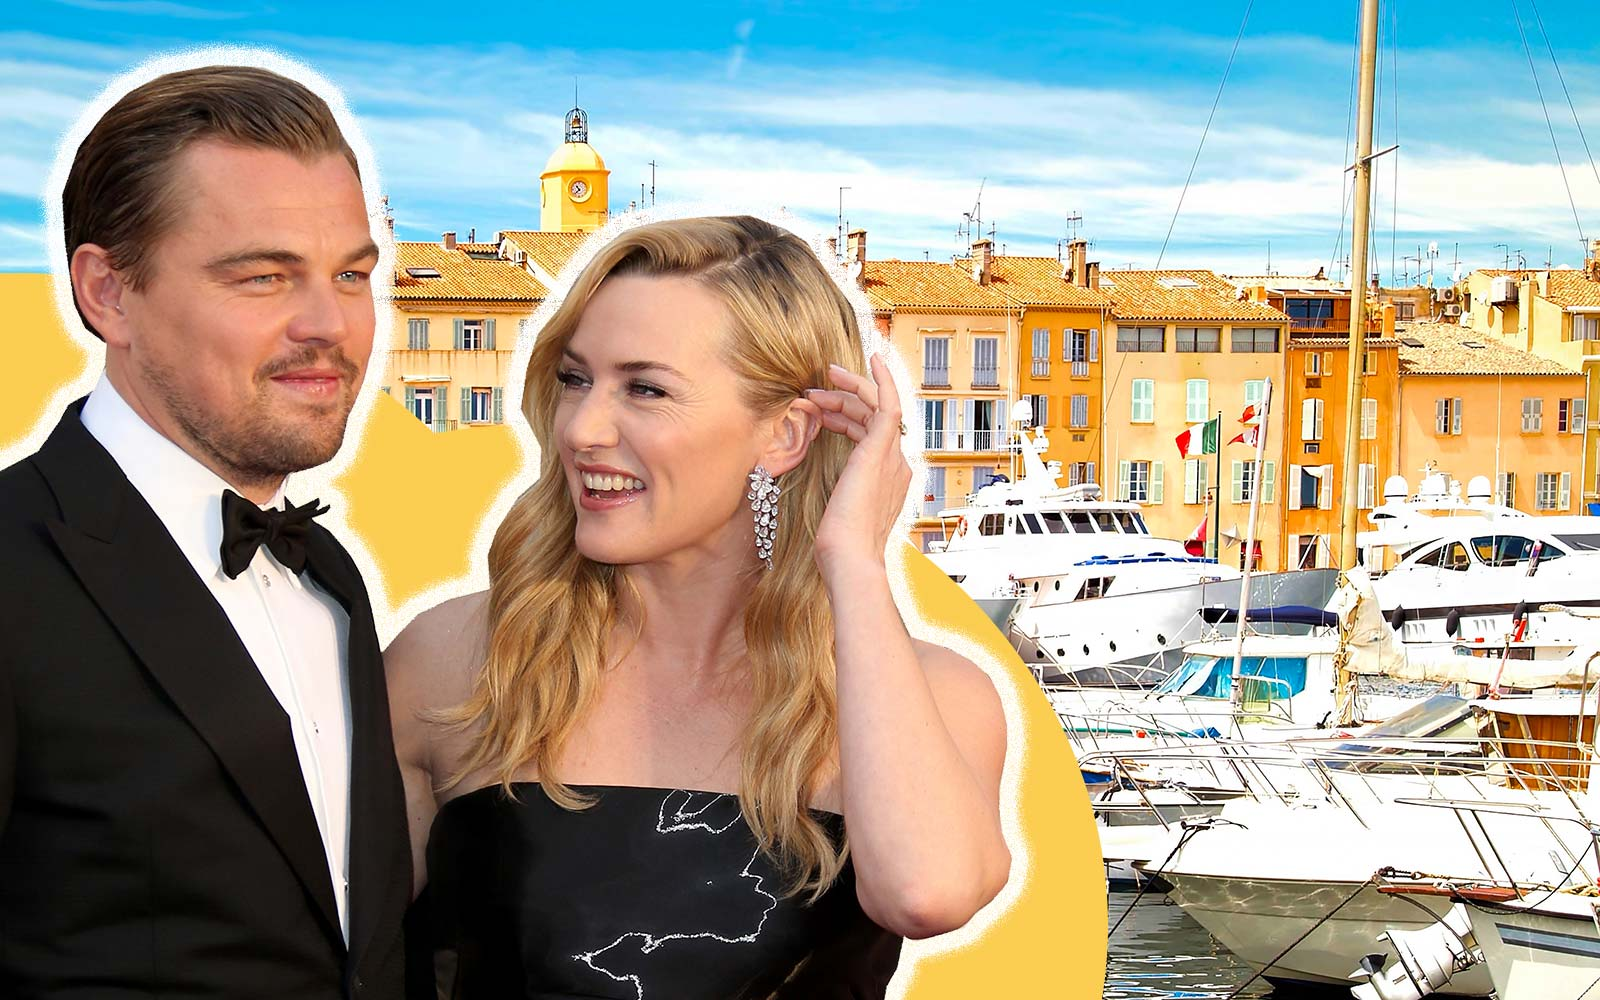 Kate Winslet and Leo DiCaprio Set Hearts Aflutter on Vacation in St. Tropez